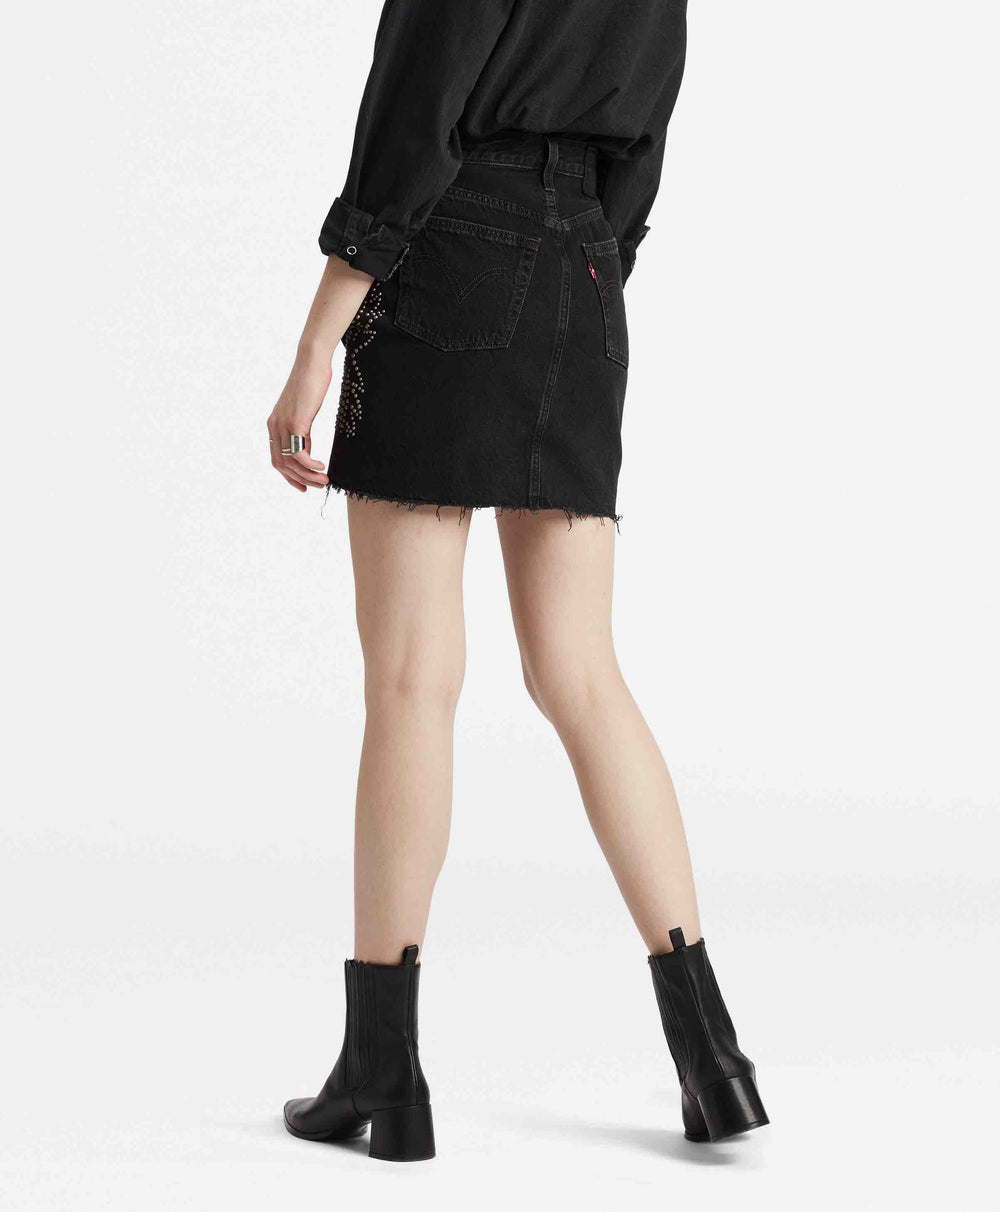 HR DECON ICONIC BF SKIRT FULL METAL